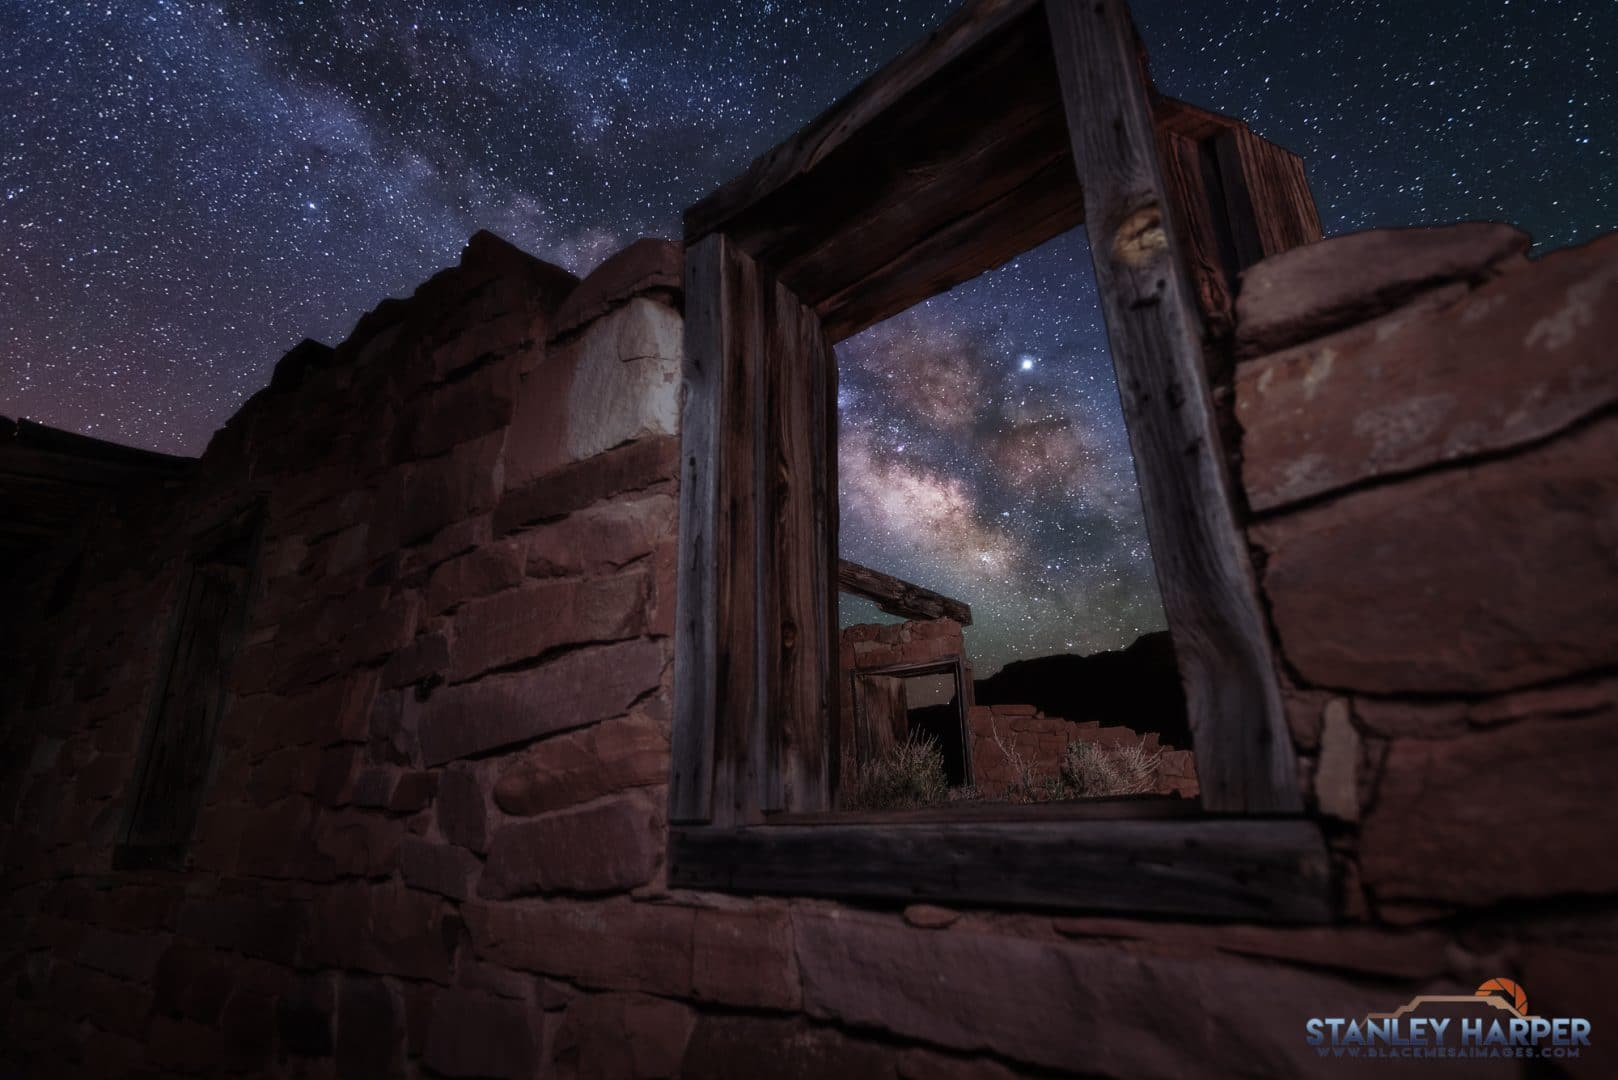 Our MilkyWayPhotographers Favorite 2019 Photos, Copyright Stanly Harper.